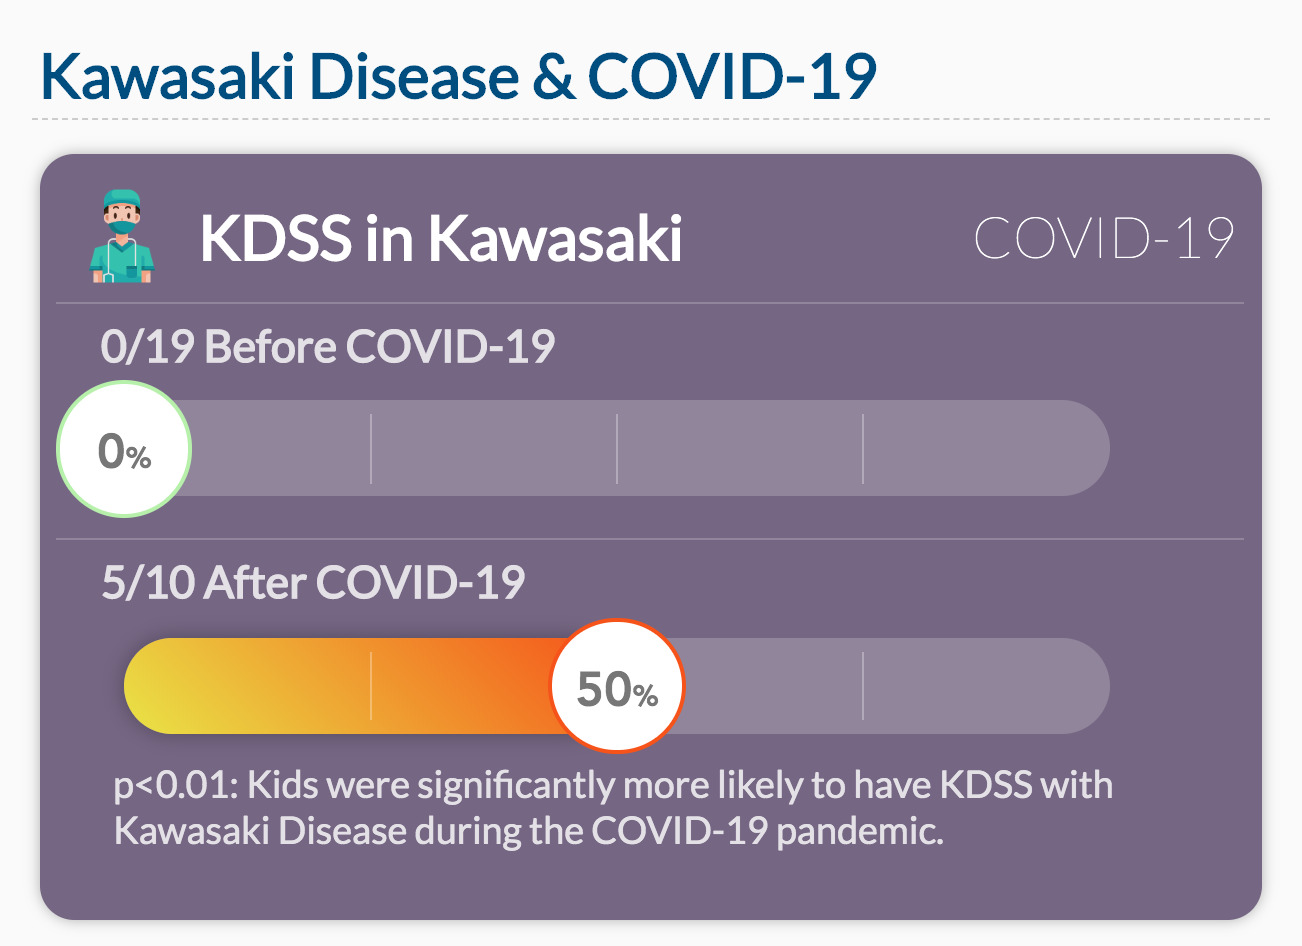 Kids were significantly more likely to have KDSS with Kawasaki Disease during the COVID-19 pandemic.